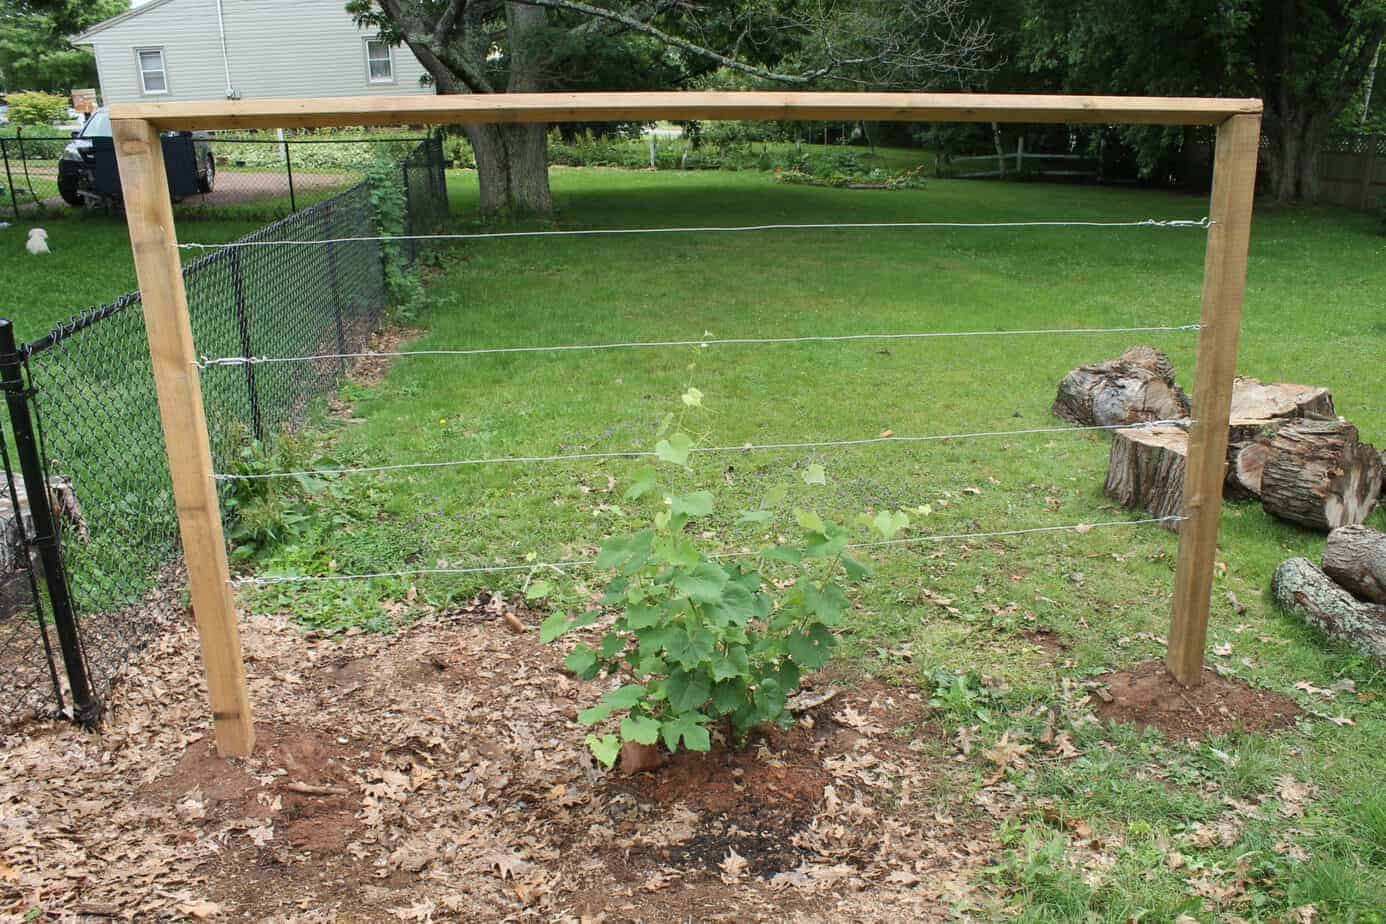 How to Build a Wire Trellis for Grapes